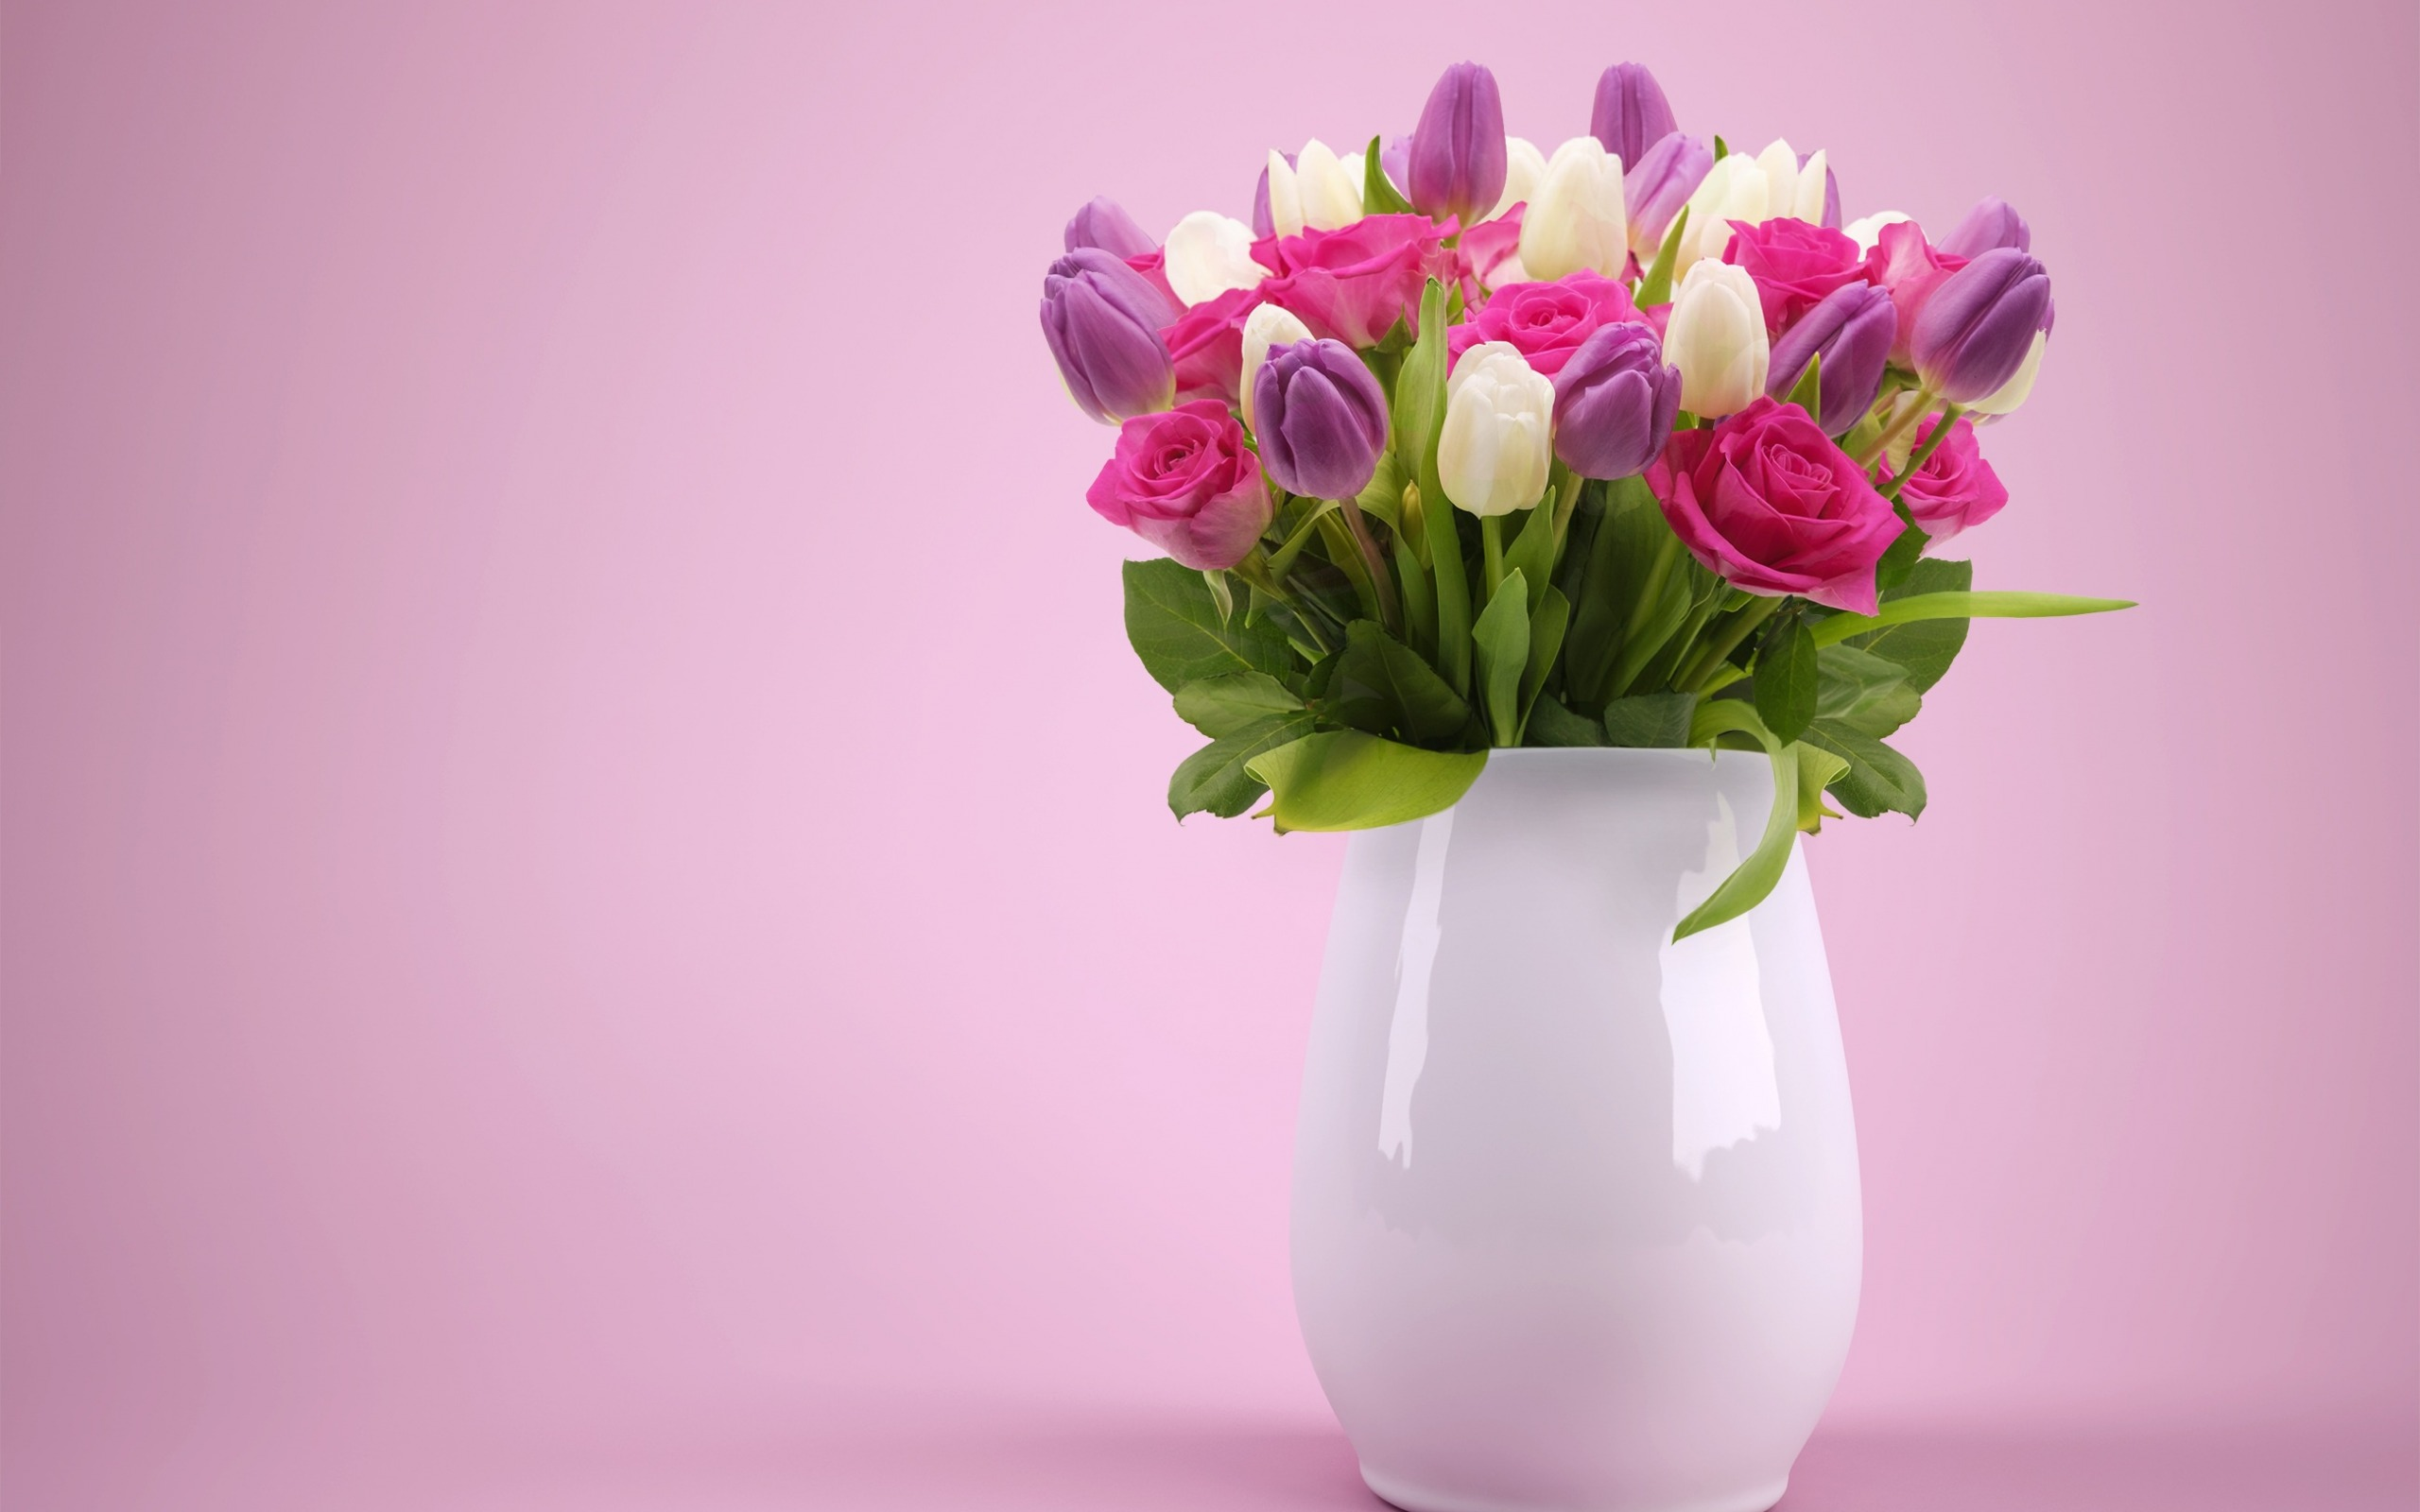 Colorful Spring Bouquet, Flowers In A Vase, Purple - Good Night Images With Flowers , HD Wallpaper & Backgrounds